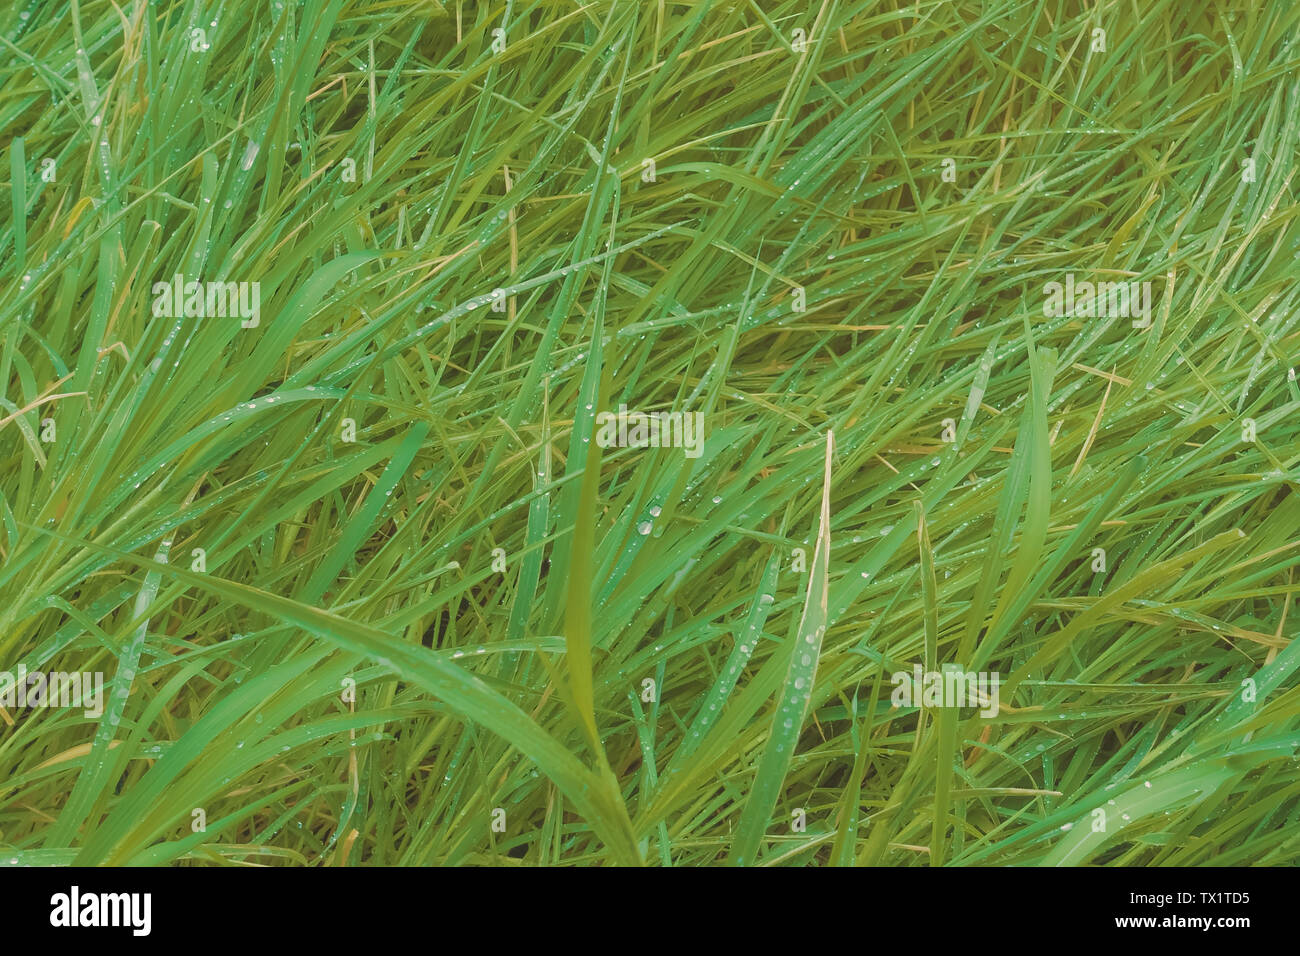 Green grass fell with dew drops after rain - Stock Image